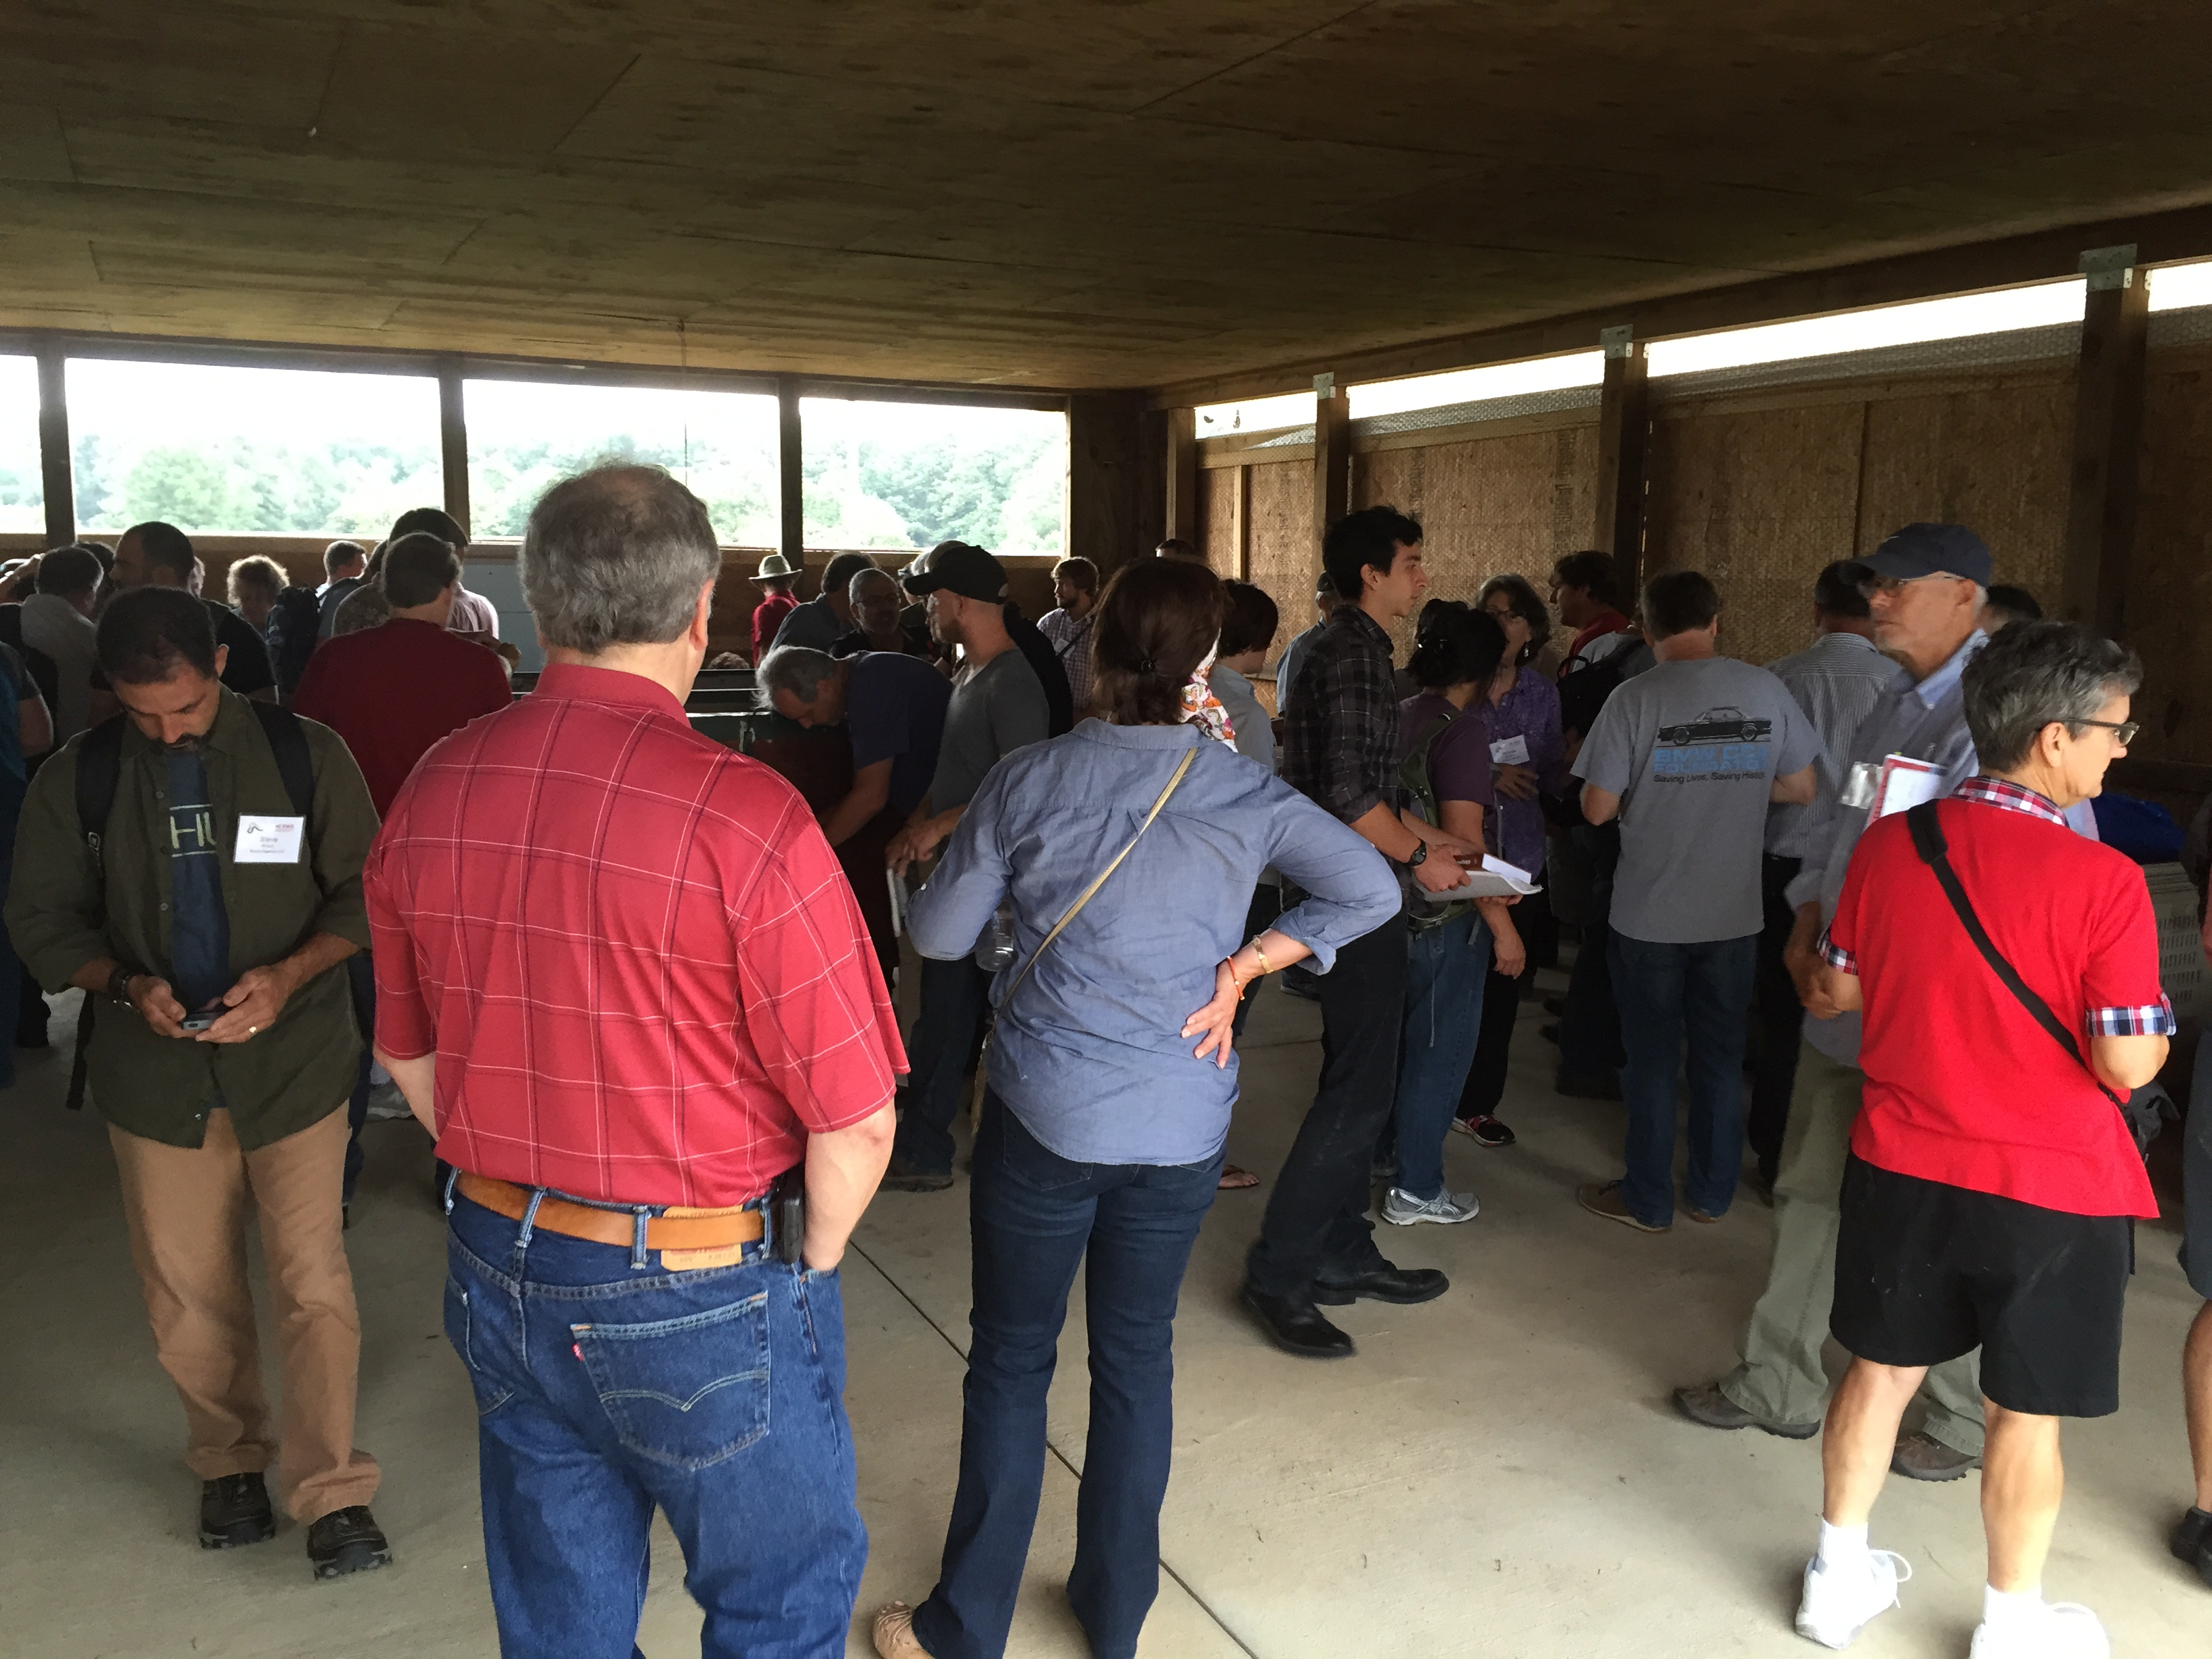 The Vermiculture Conference features a field trip to NC State's Compost Learning Lab.